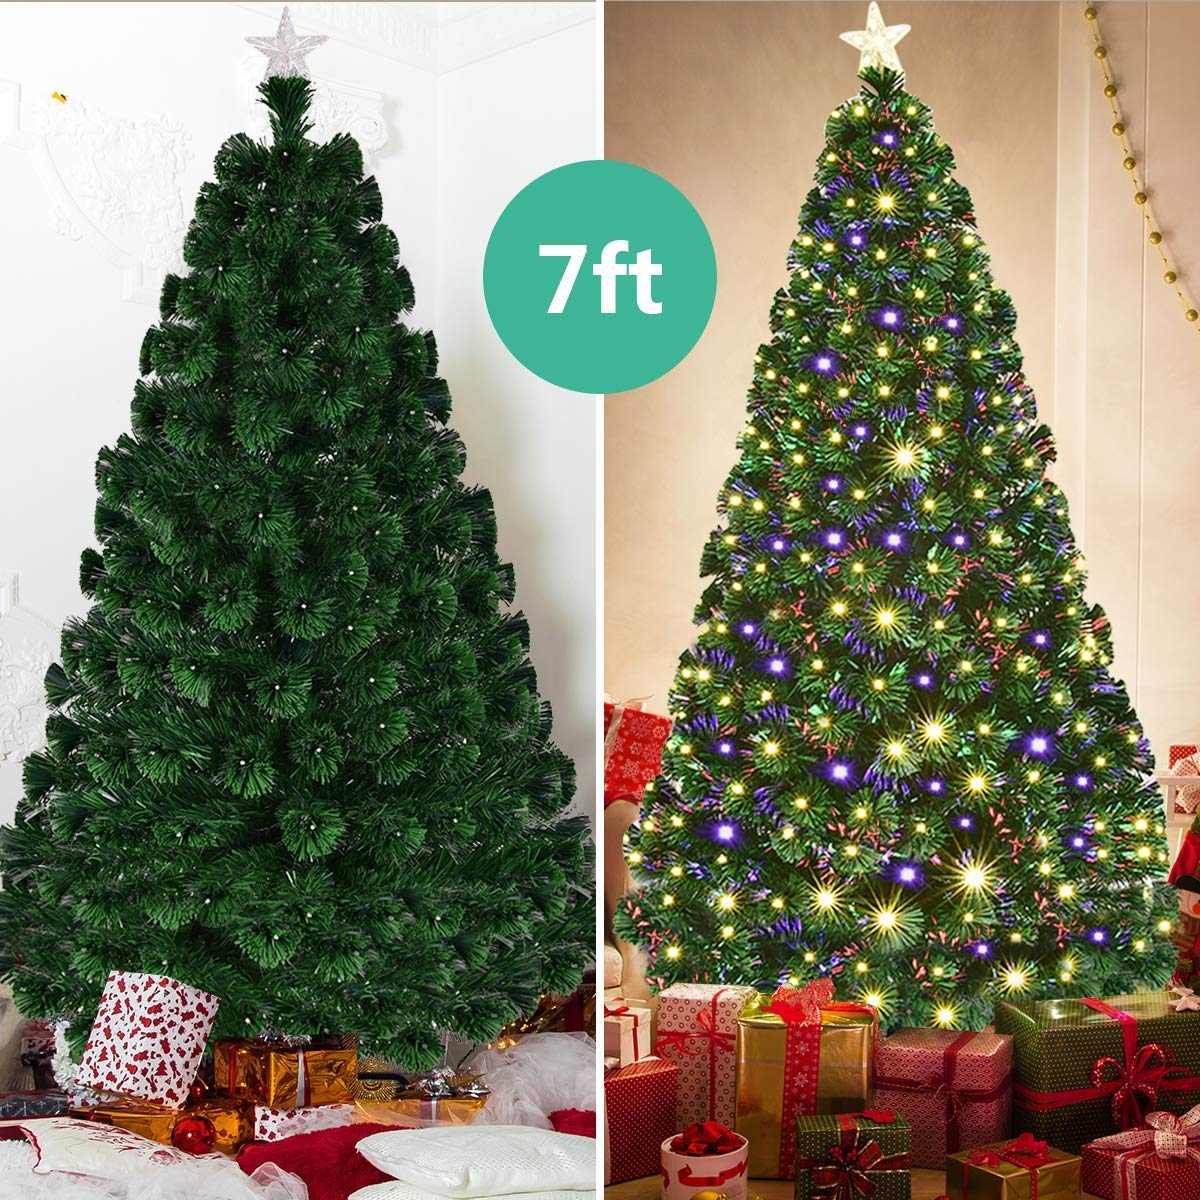 7 Ft Christmas Tree Prelit.Goplus 7ft Artificial Christmas Tree Pre Lit Optical Fiber Tree 8 Flash Modes W Ul Certified Warm White Electrodeless Led Lights Metal Stand